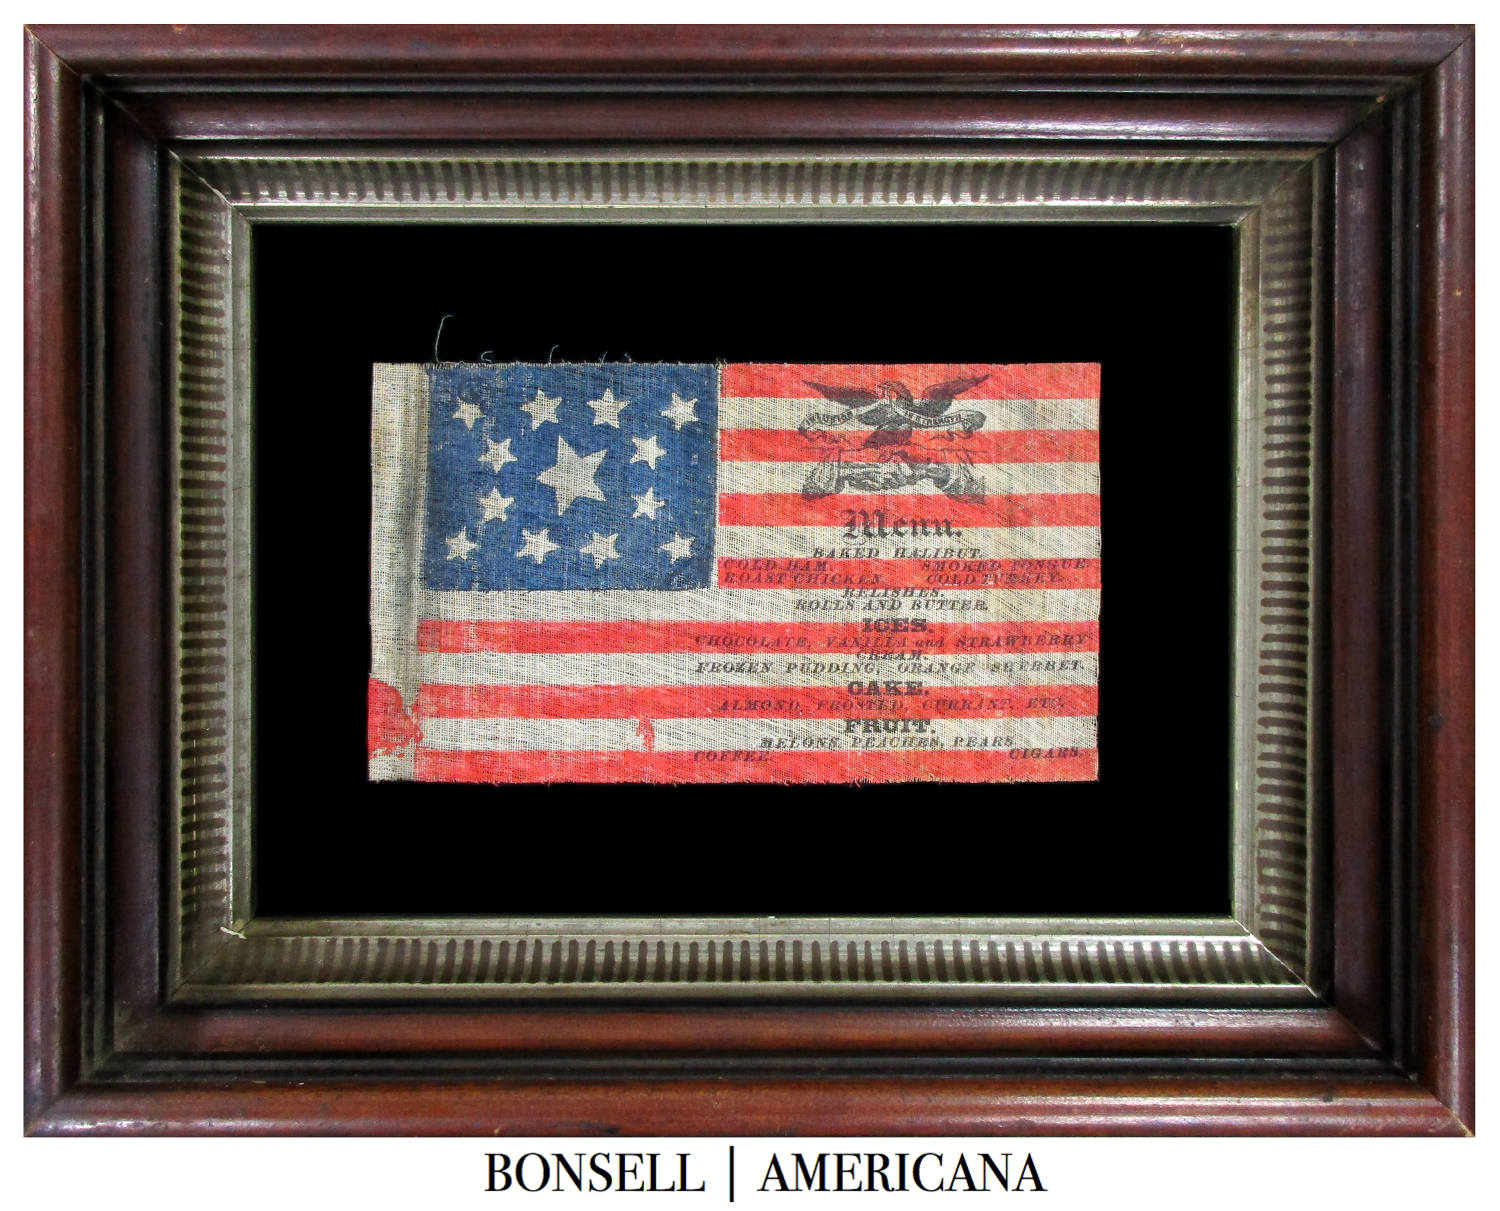 13 Star Antique American Flag with Overprinted Dinner Menu Likely for the Ulysses S. Grant Campaign